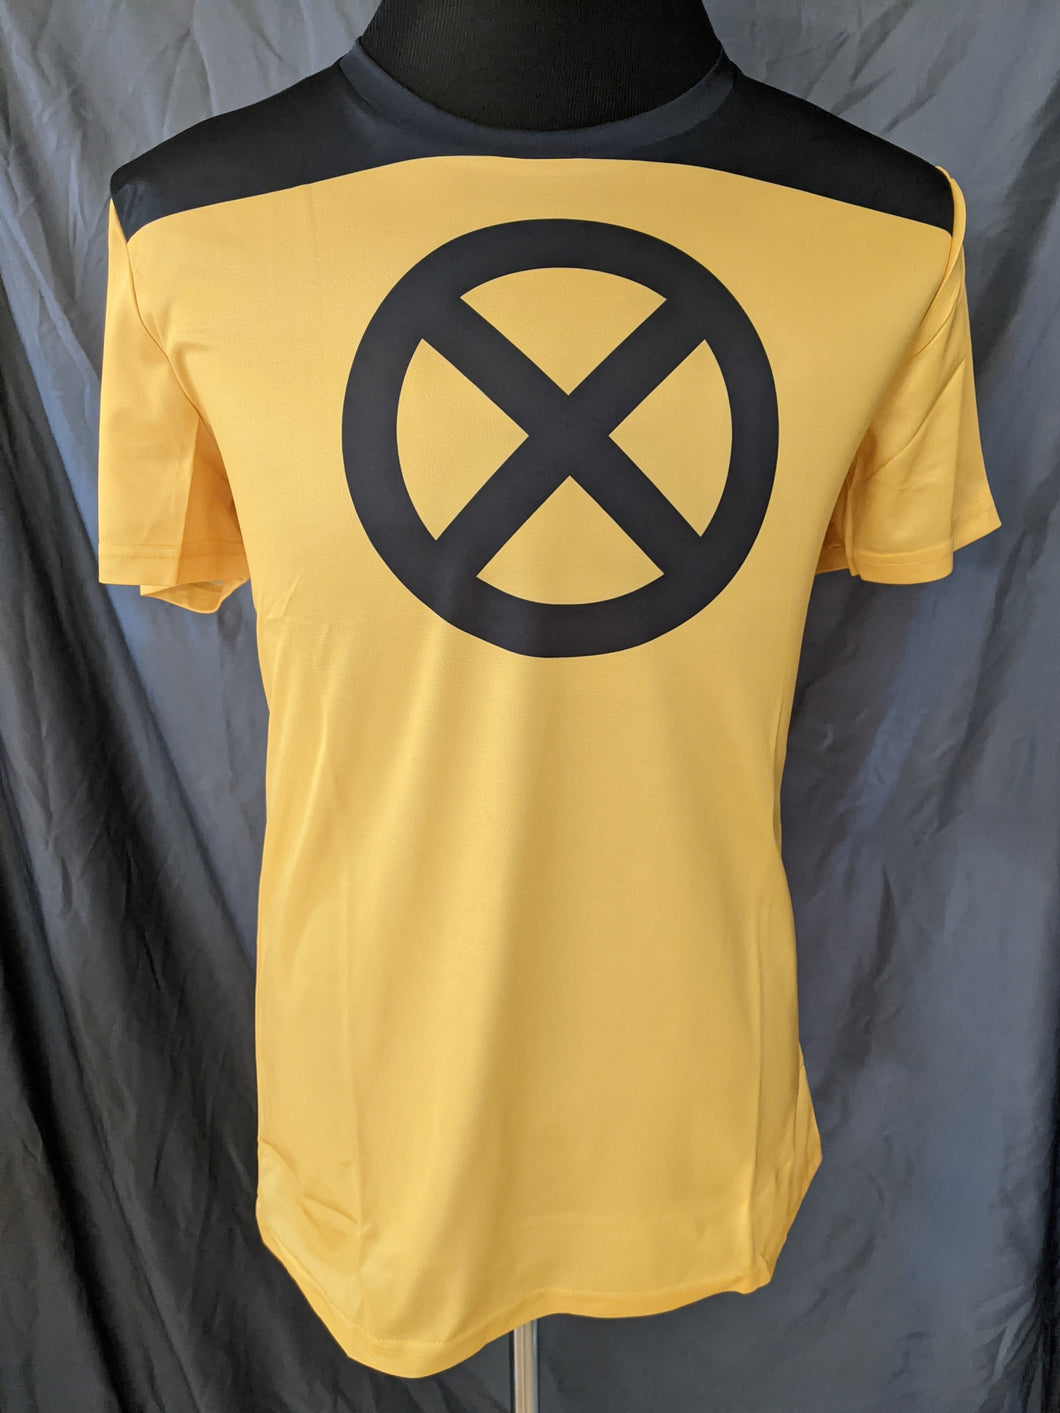 Deadpool 2 Trainee Jersey